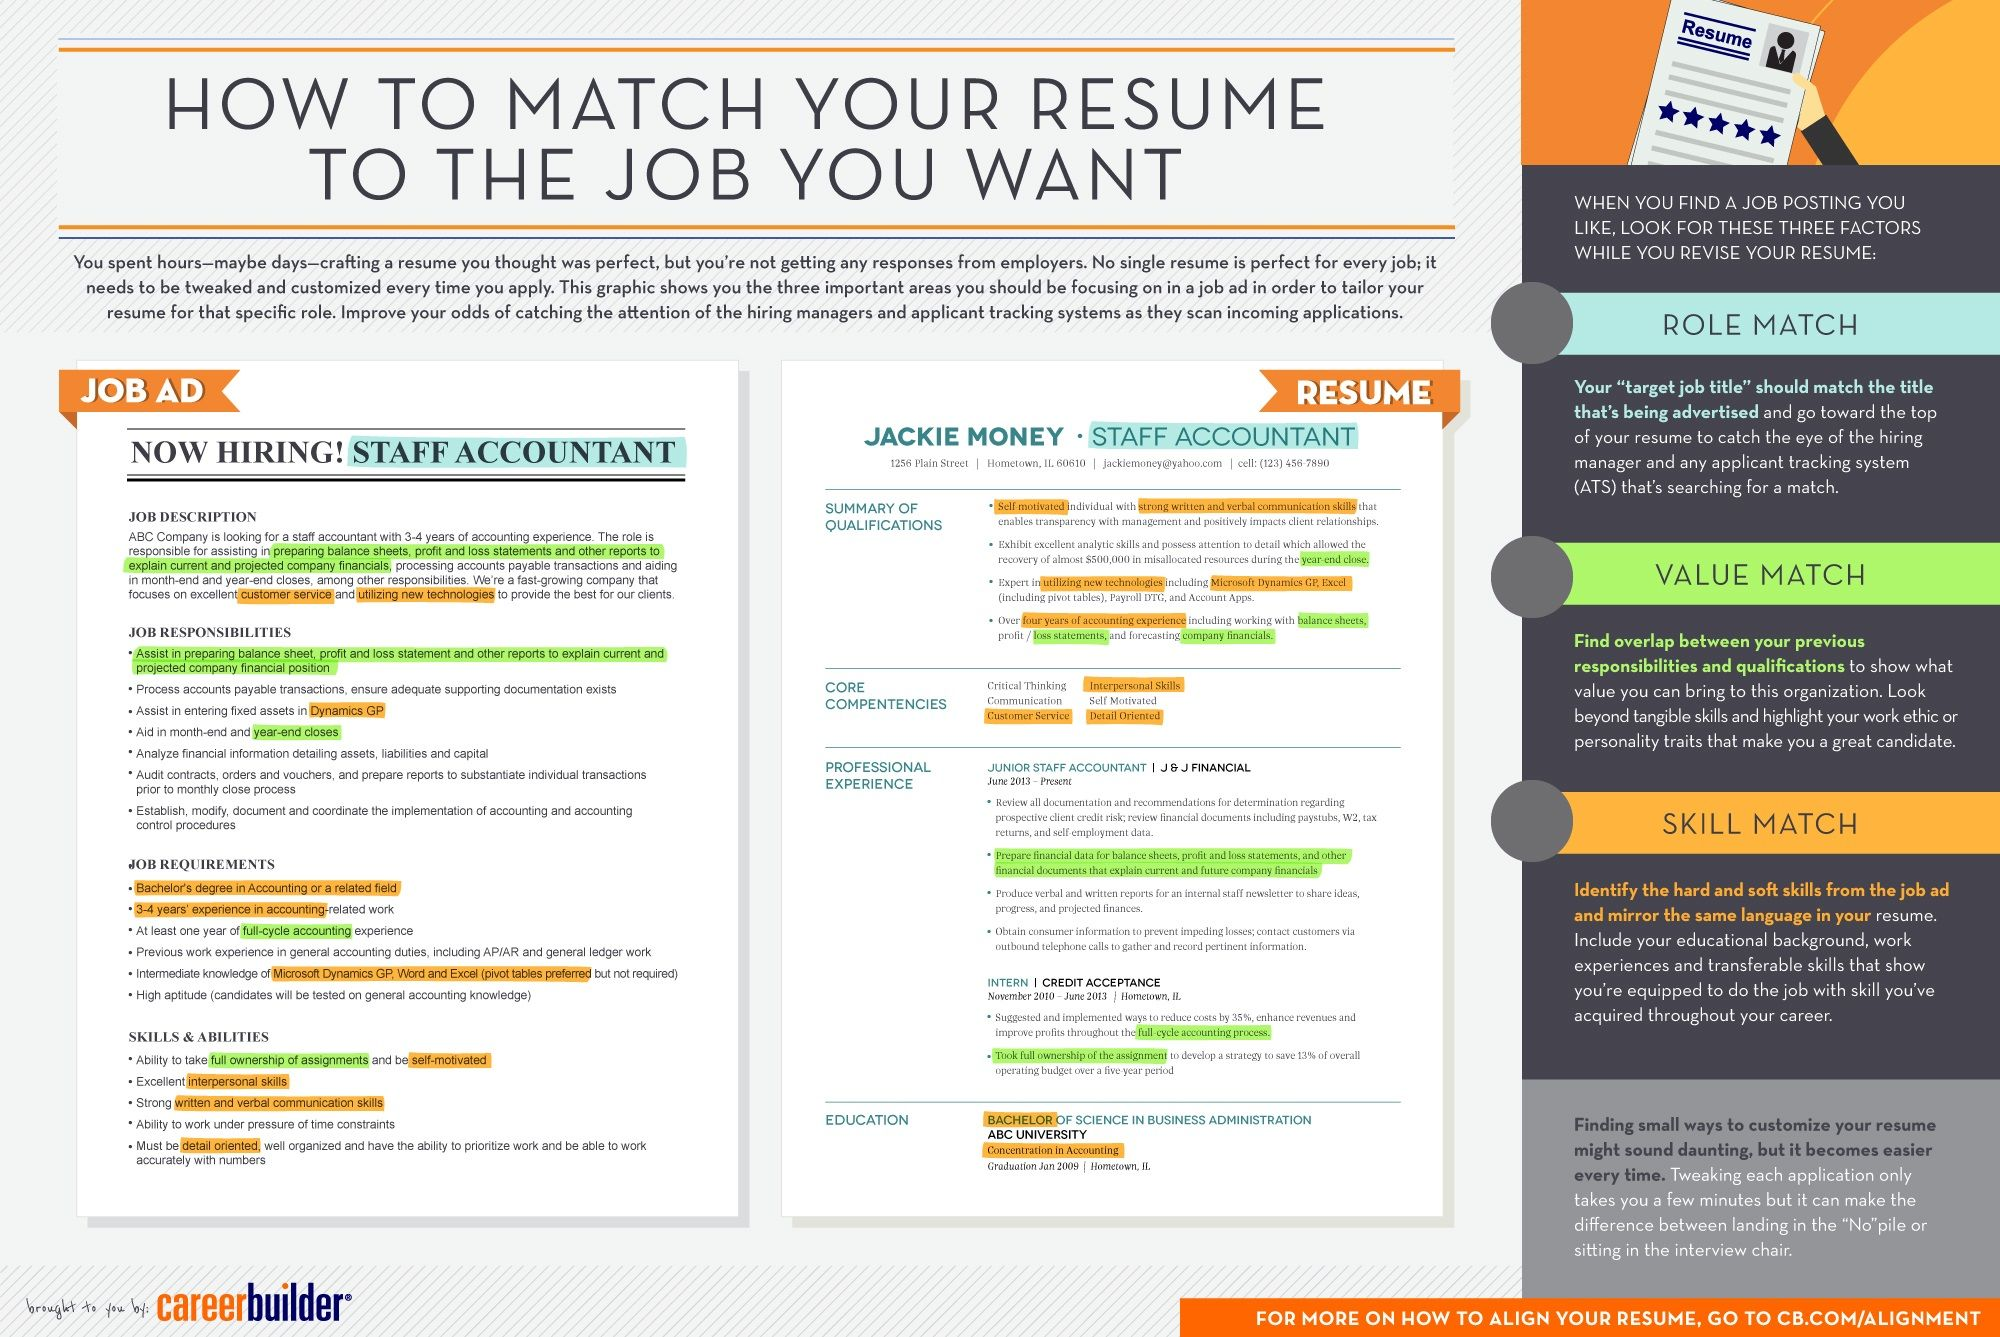 How To Match Your Resume To Every Job You Want Infographic Job